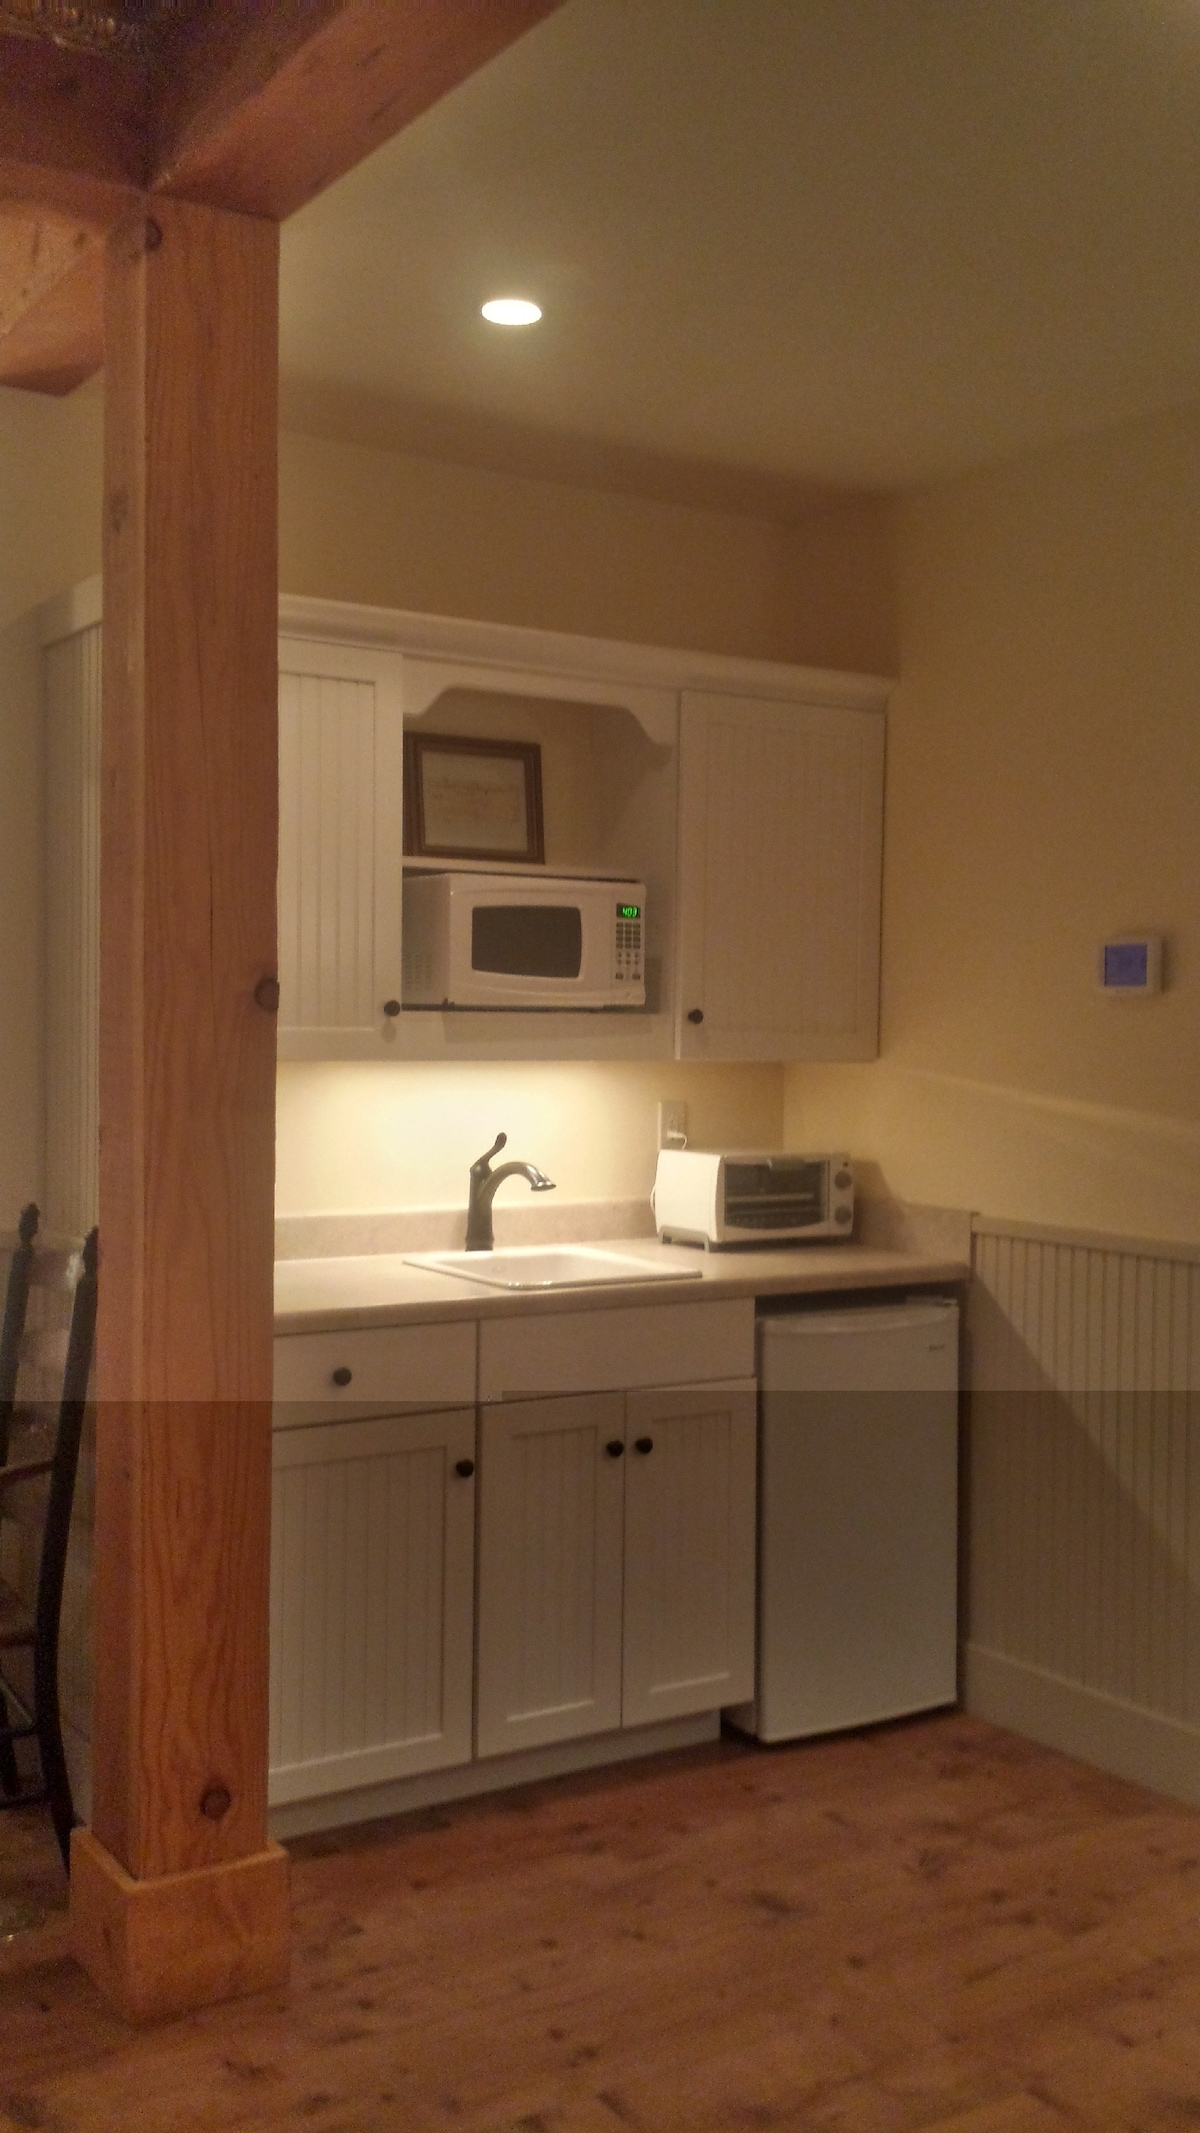 Kitchenette with microwave, coffee maker, toaster oven and small refrigerator.